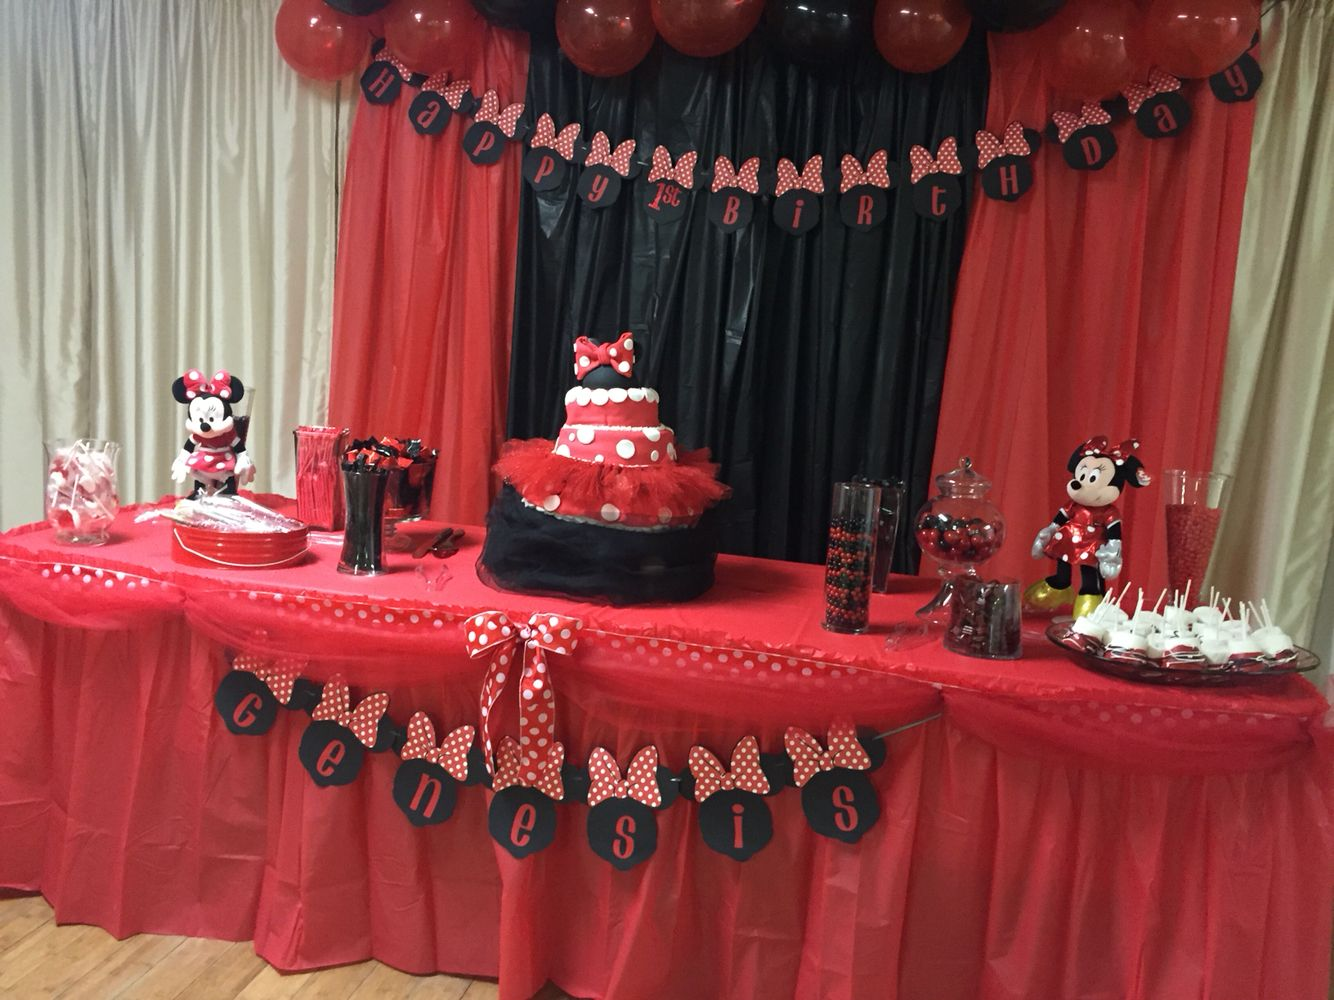 1st Birthday Minnie Mouse Cake Table Red And Black Minnie Mouse Party Decorations Minnie Mouse Party Red Minnie Mouse